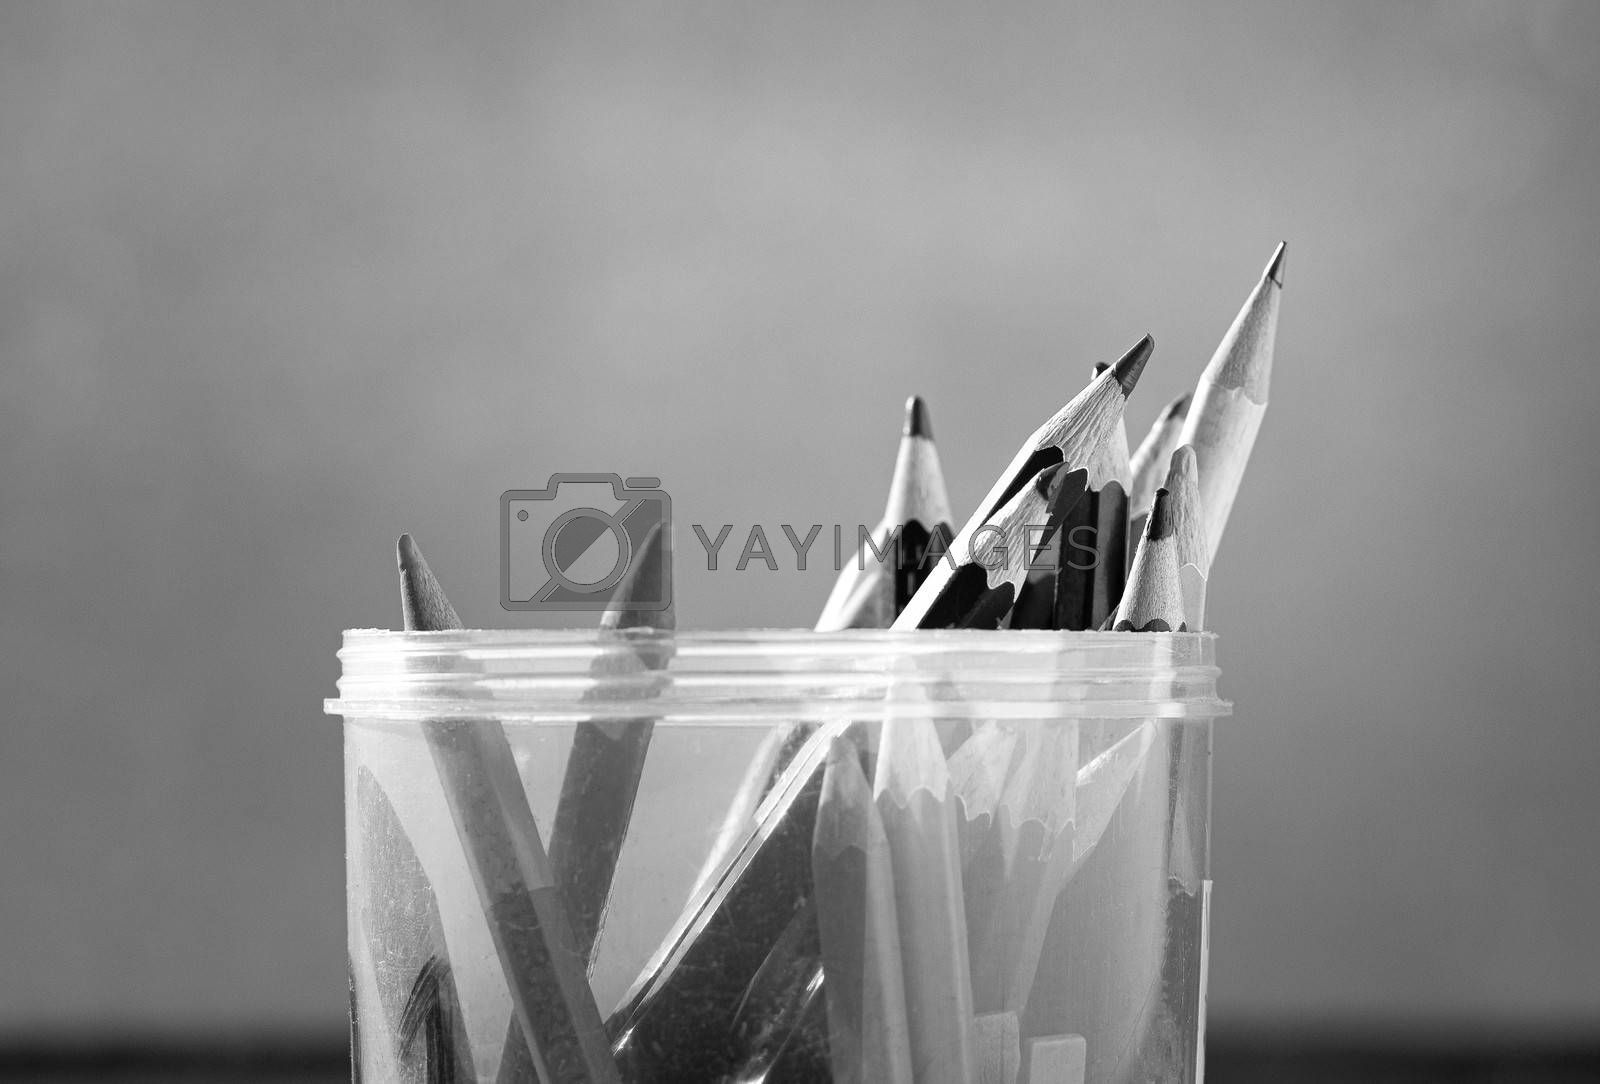 Close up of Colored pencils are in a plastic round box placed on a wooden table by the window. Black and white style tone.